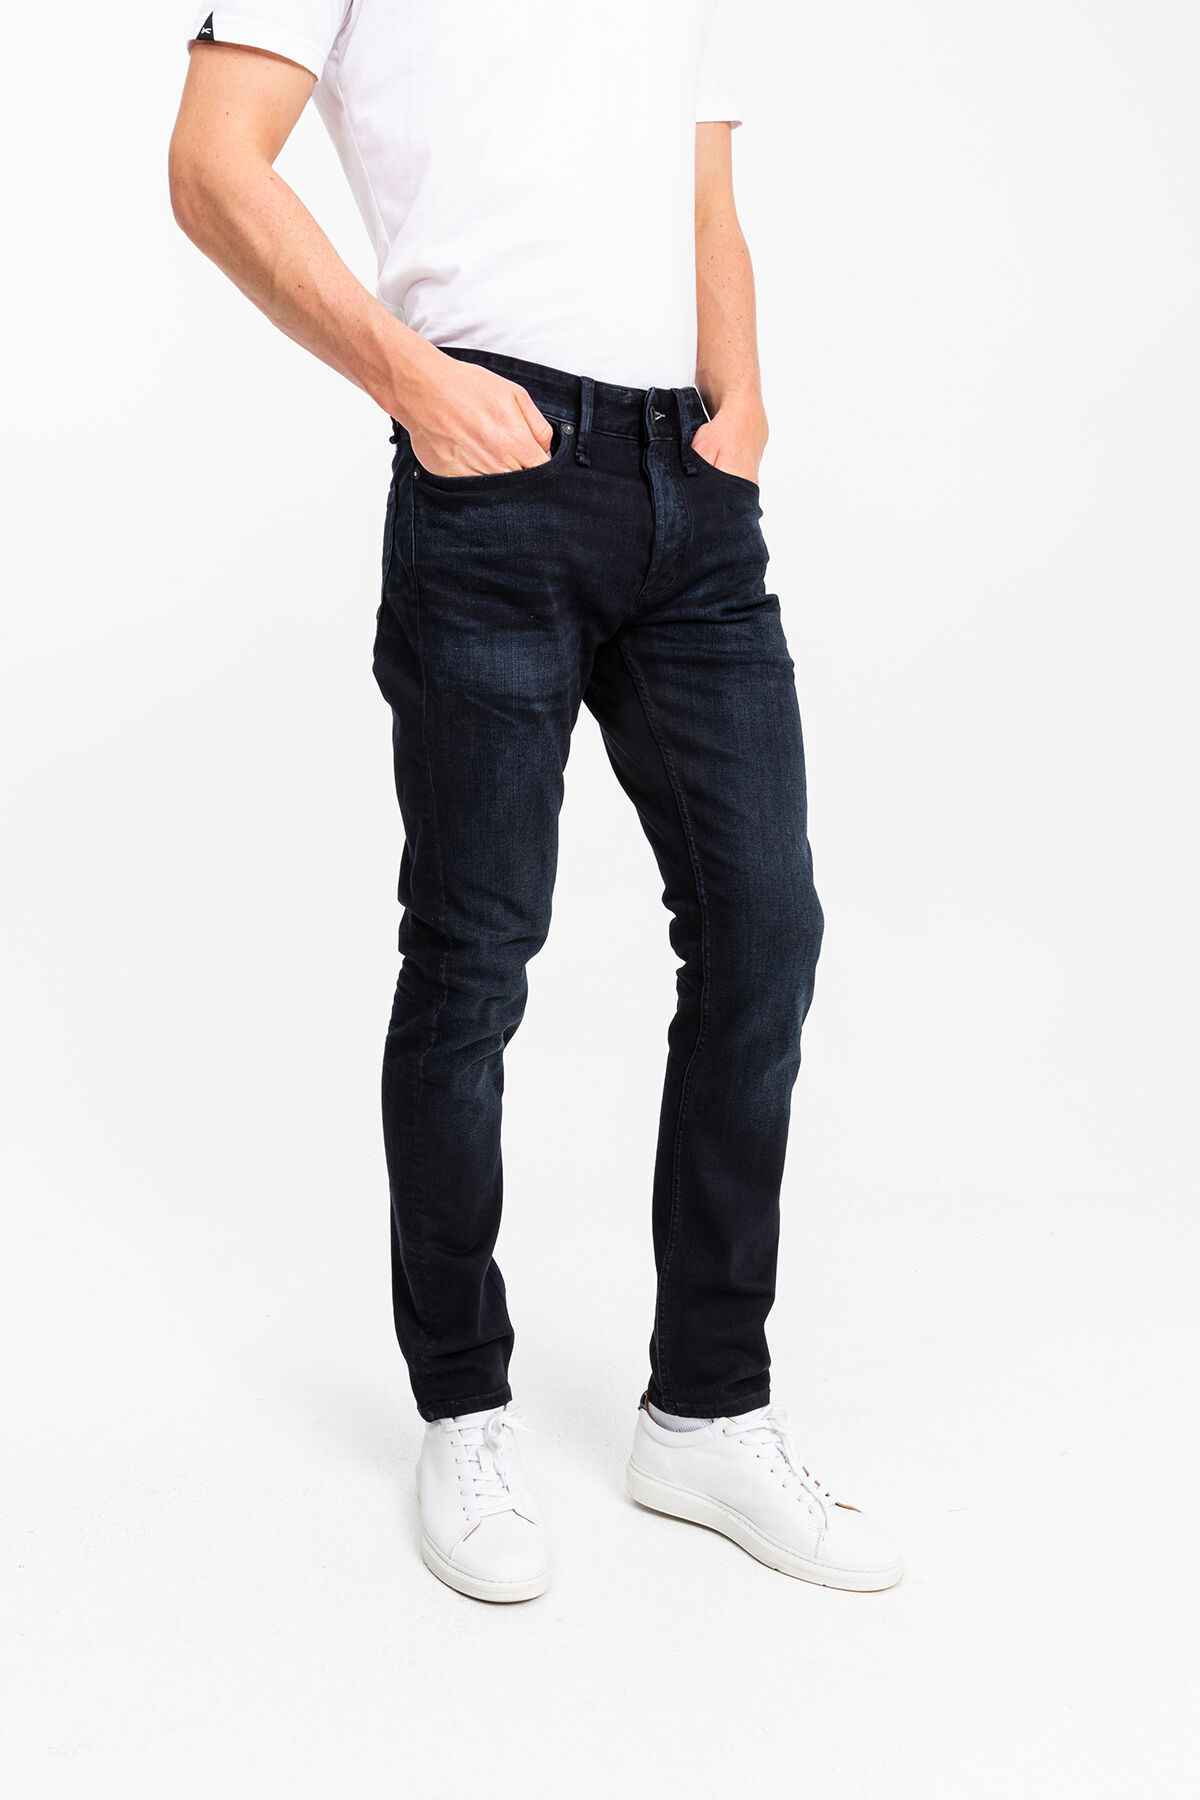 RAZOR Blue-black warp & black weft denim - Slim Fit